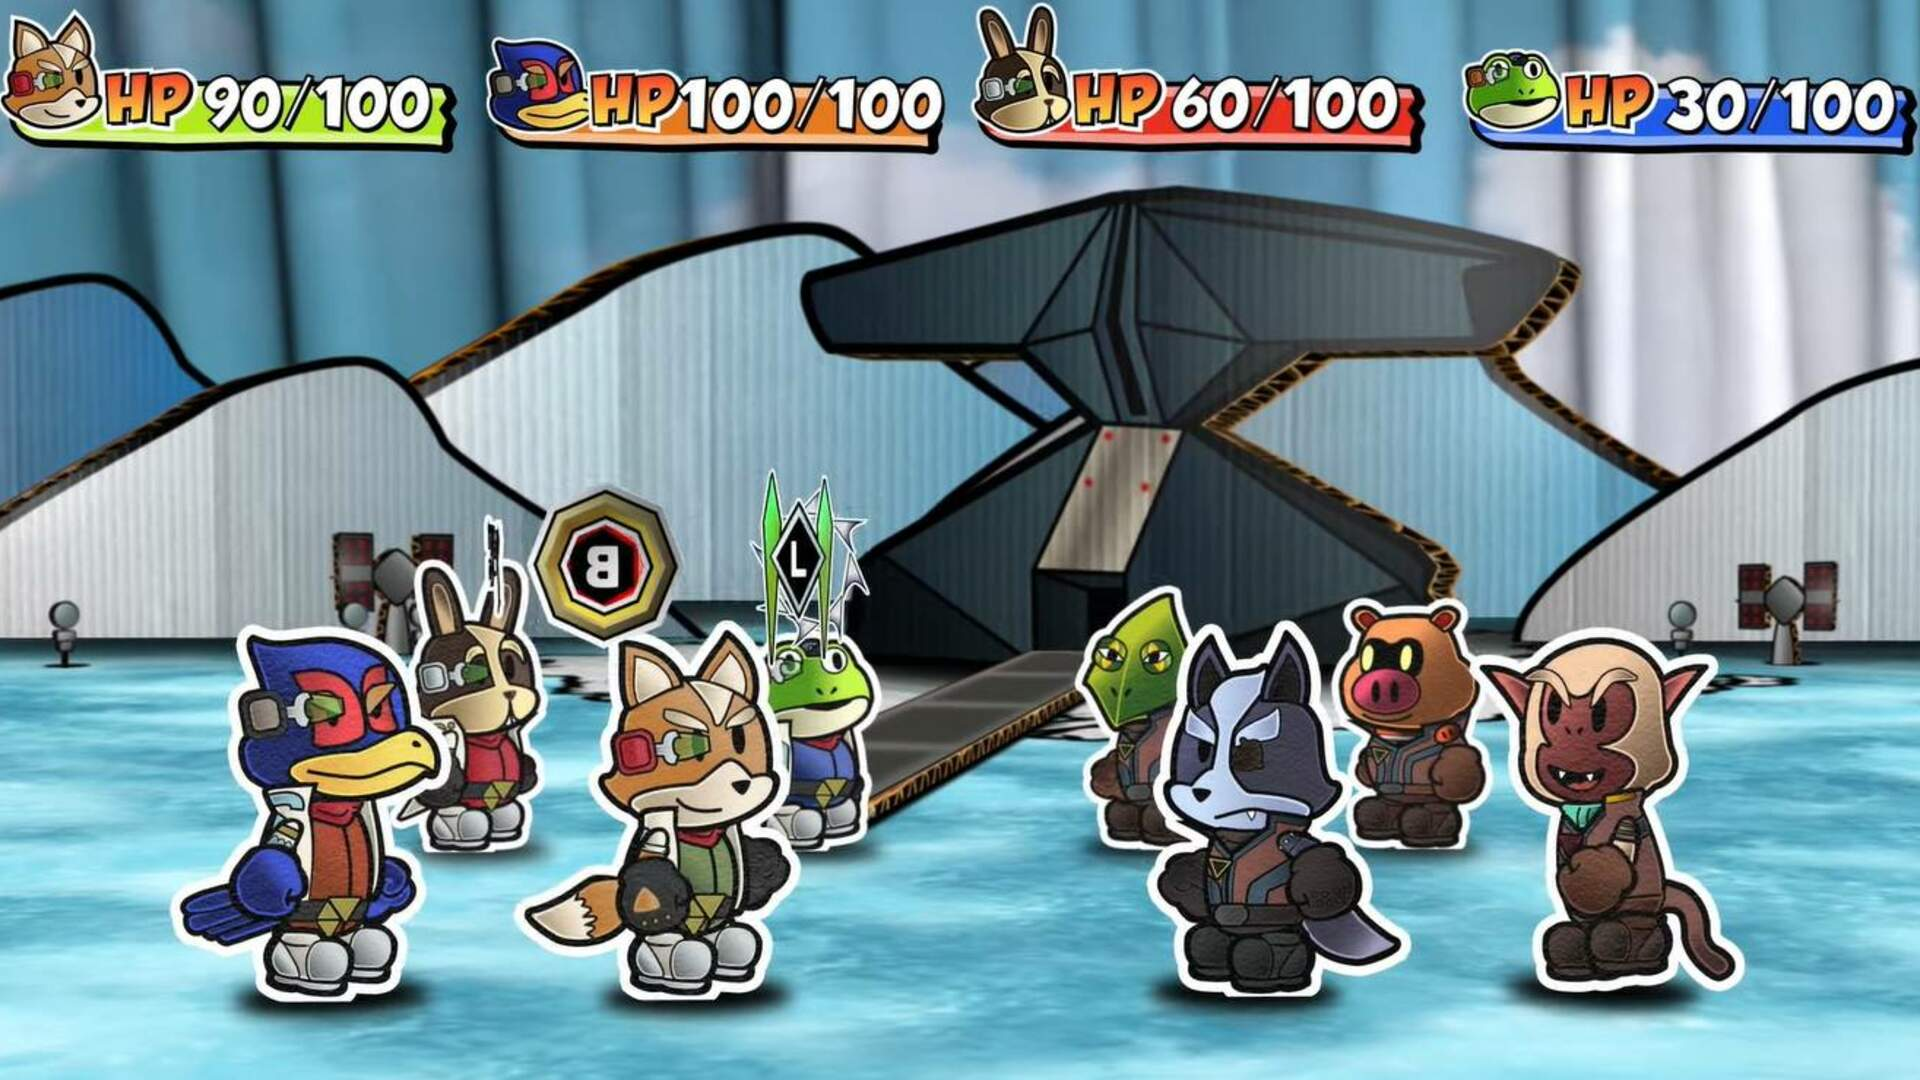 Fan Turns Star Fox 64 Into a Paper Mario-Style Pop-Up Book